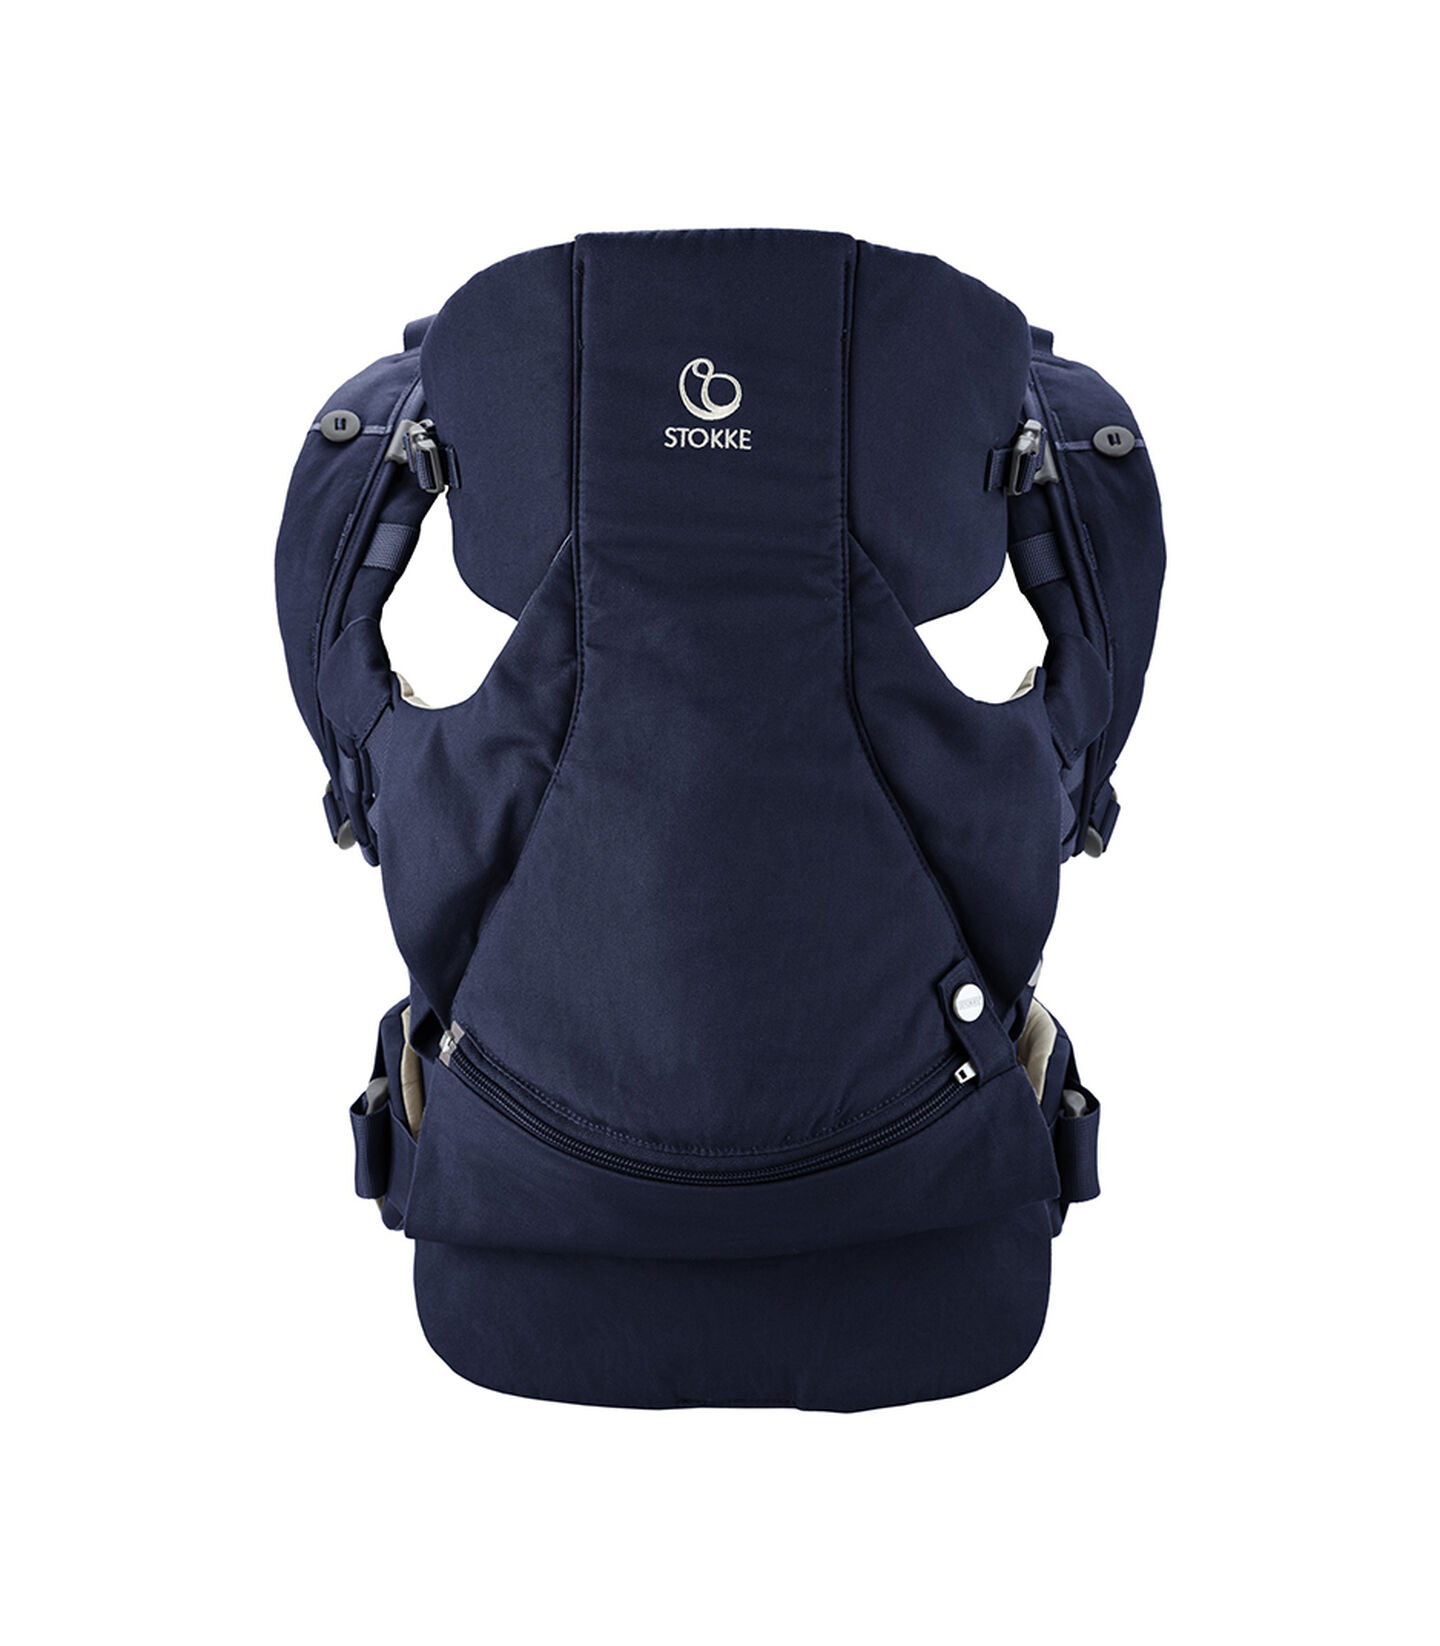 Stokke® MyCarrier™ Bauchtrage Deep Blue, Deep Blue, mainview view 2